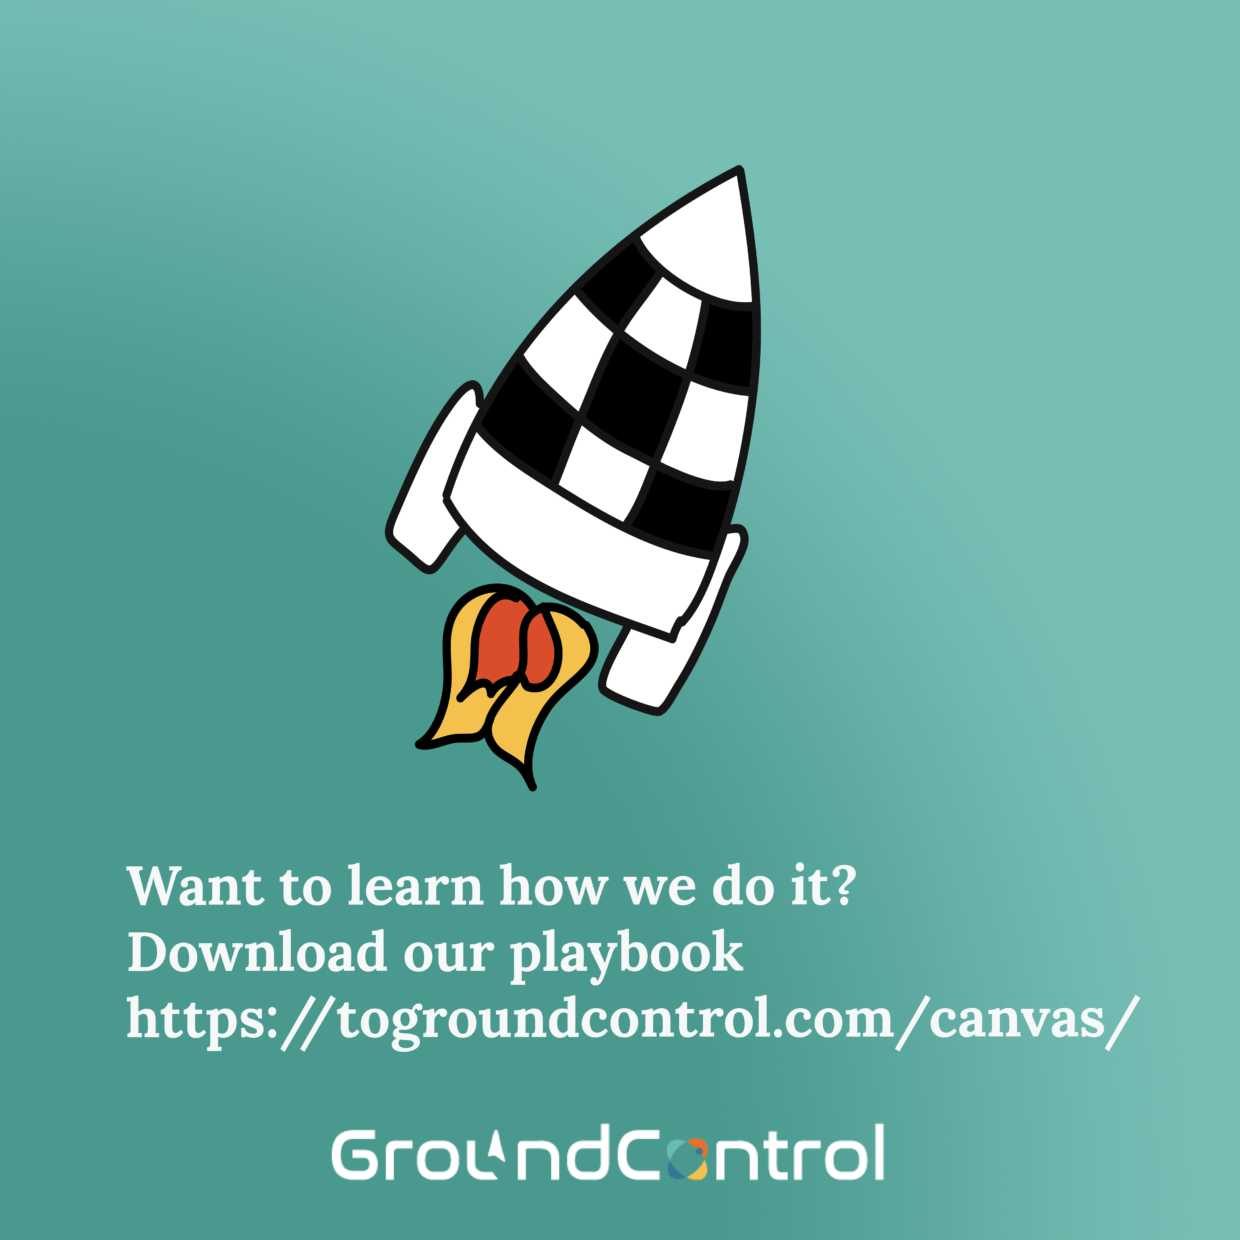 Want to learn how we dot it? Download our playbook!